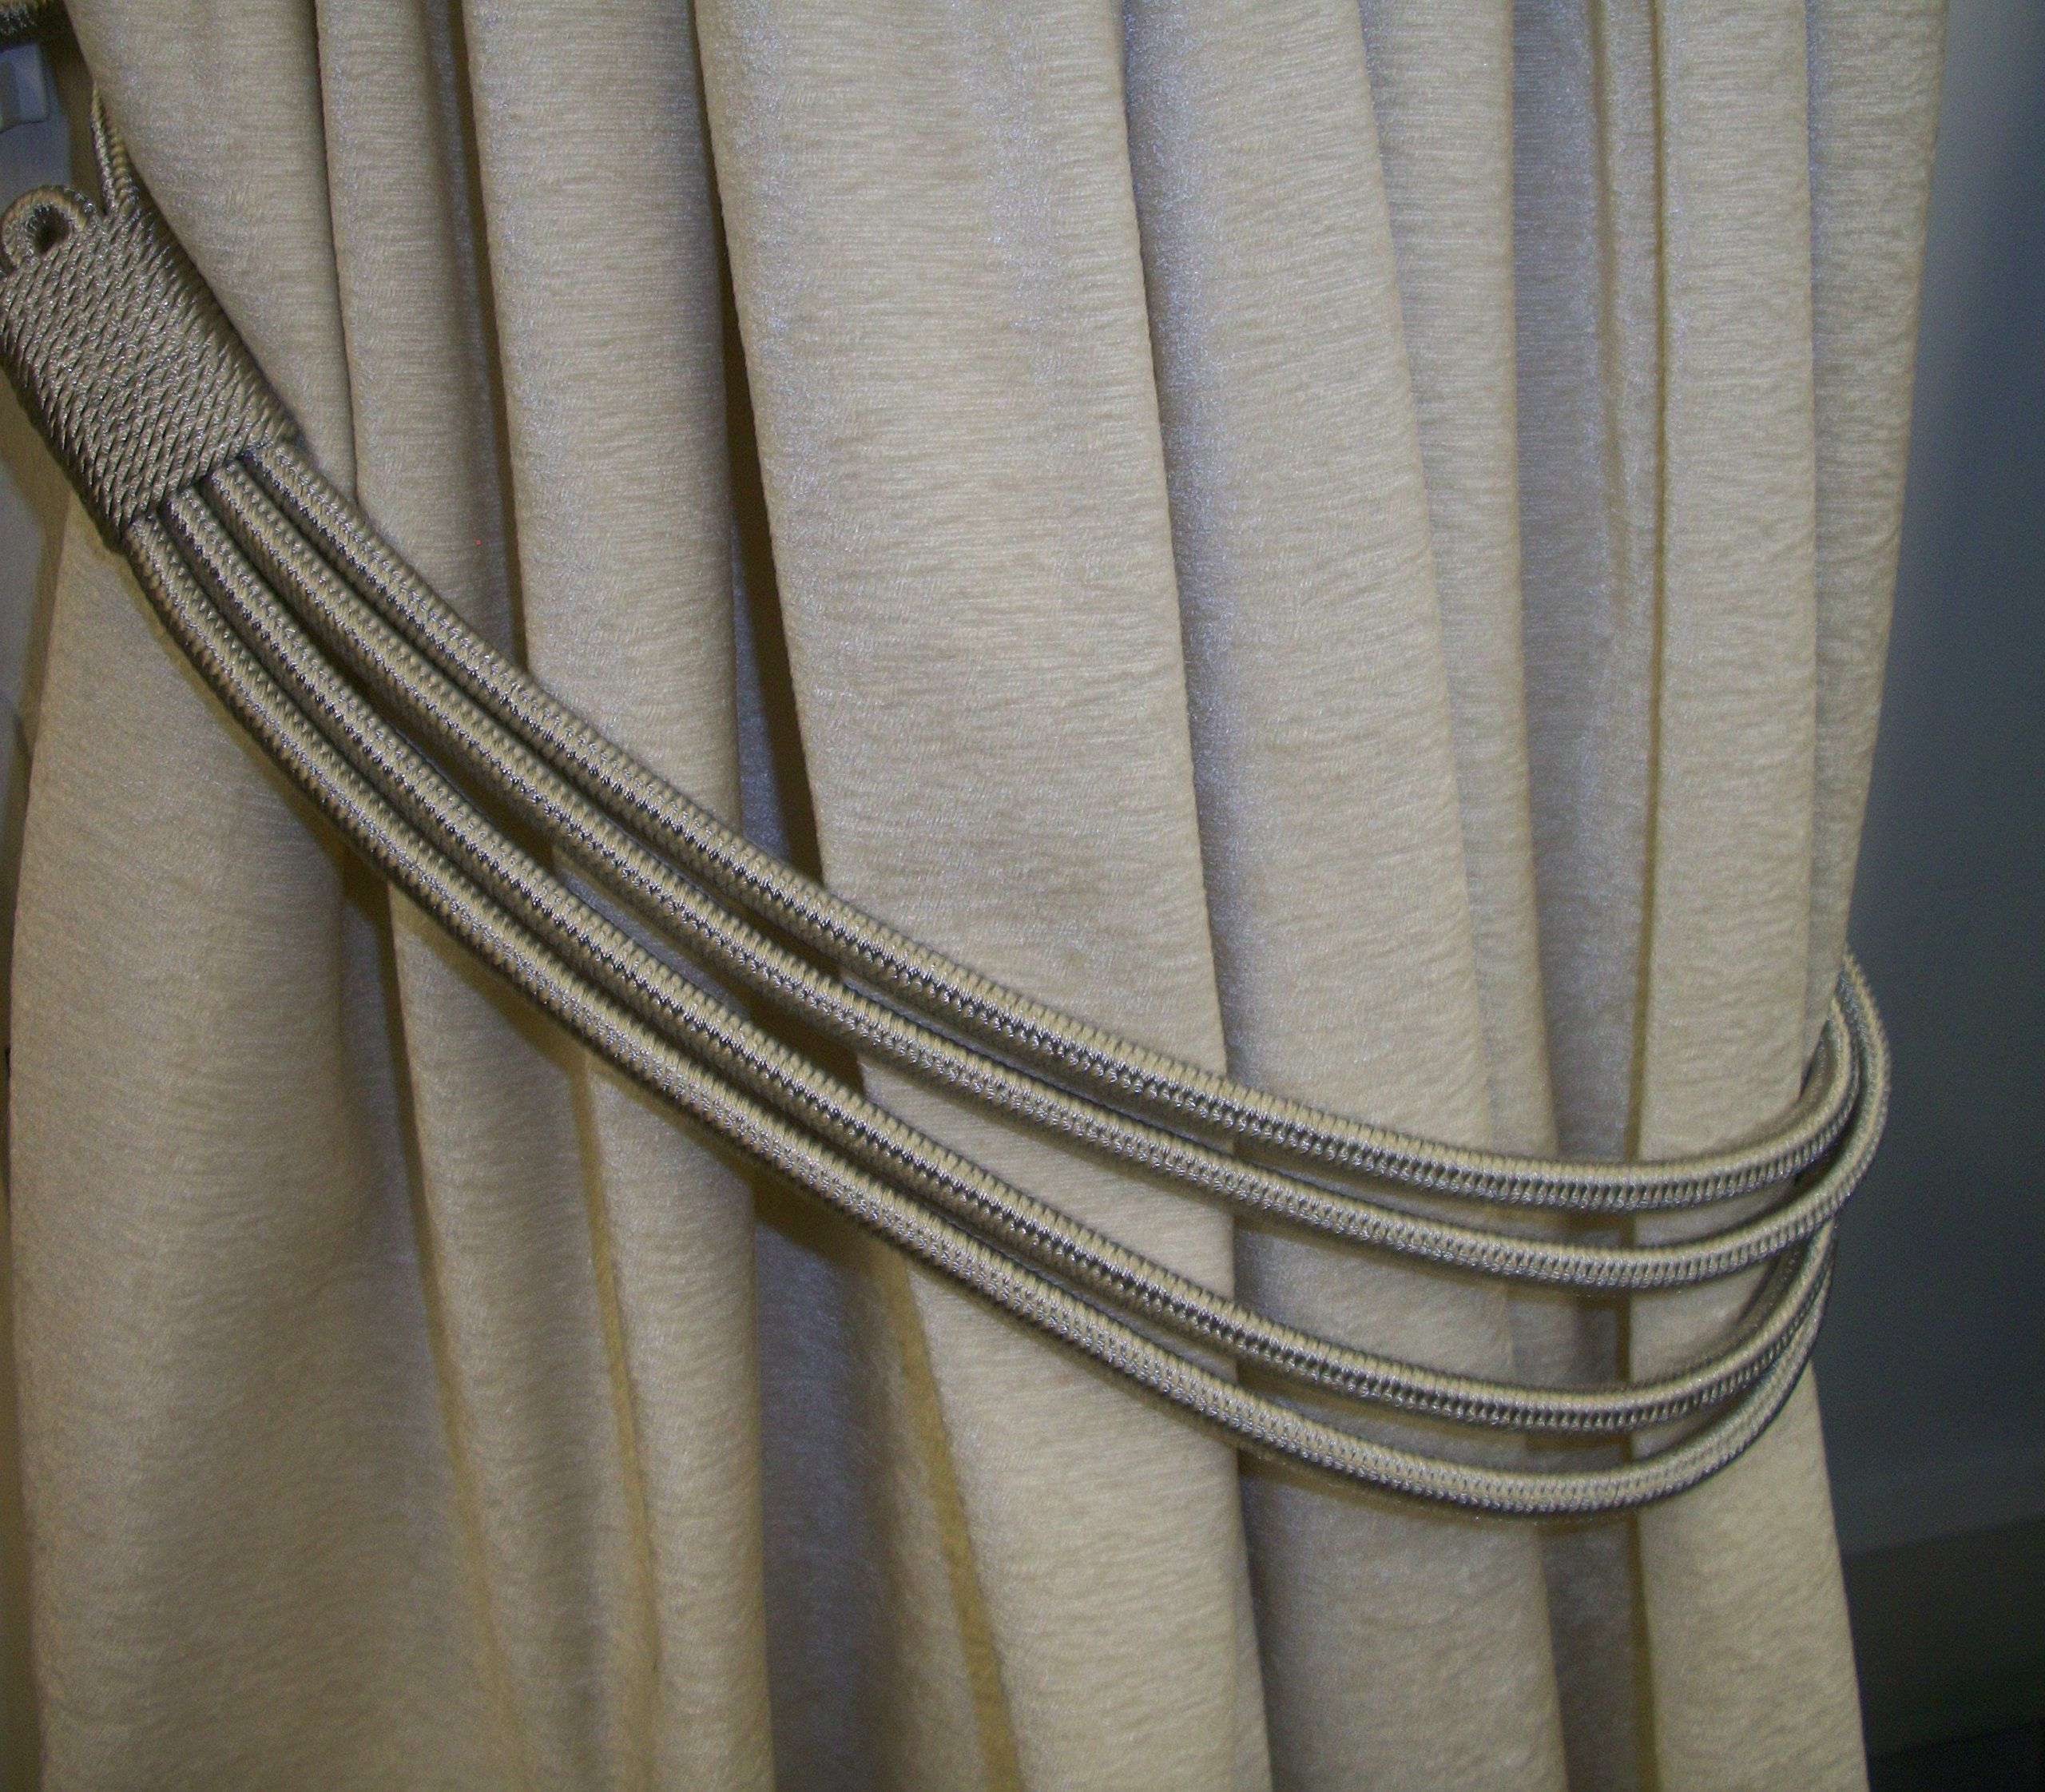 silver grey cord band curtain tie back